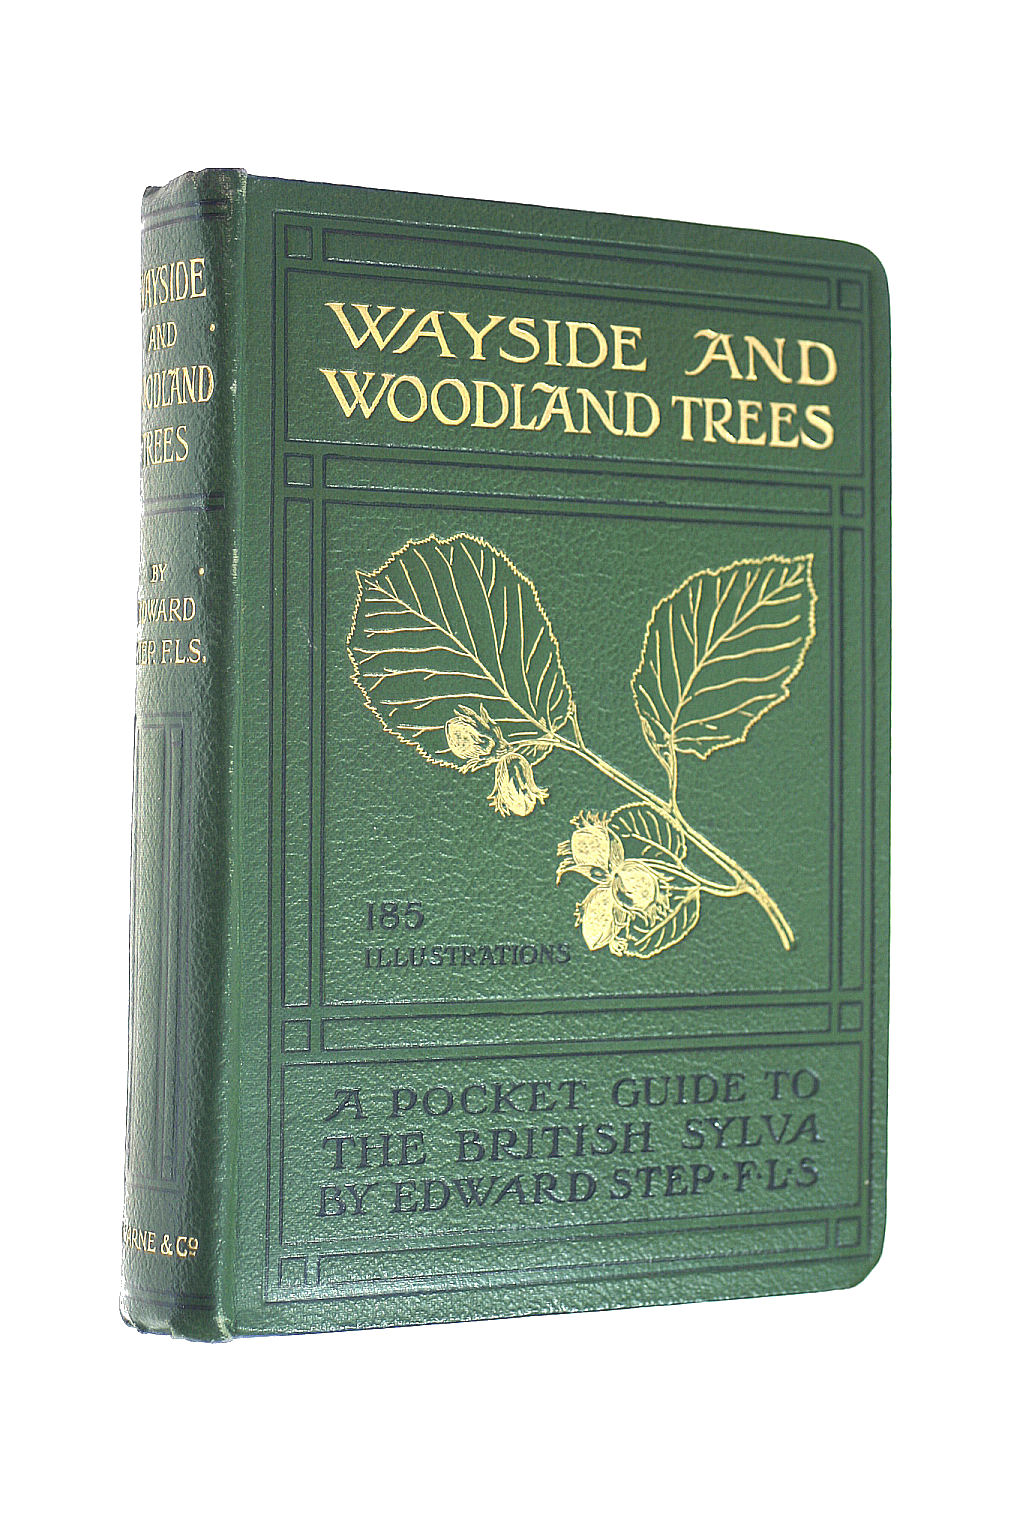 Image for Wayside and Woodland Trees. A Pocket Guide to the British Sylva